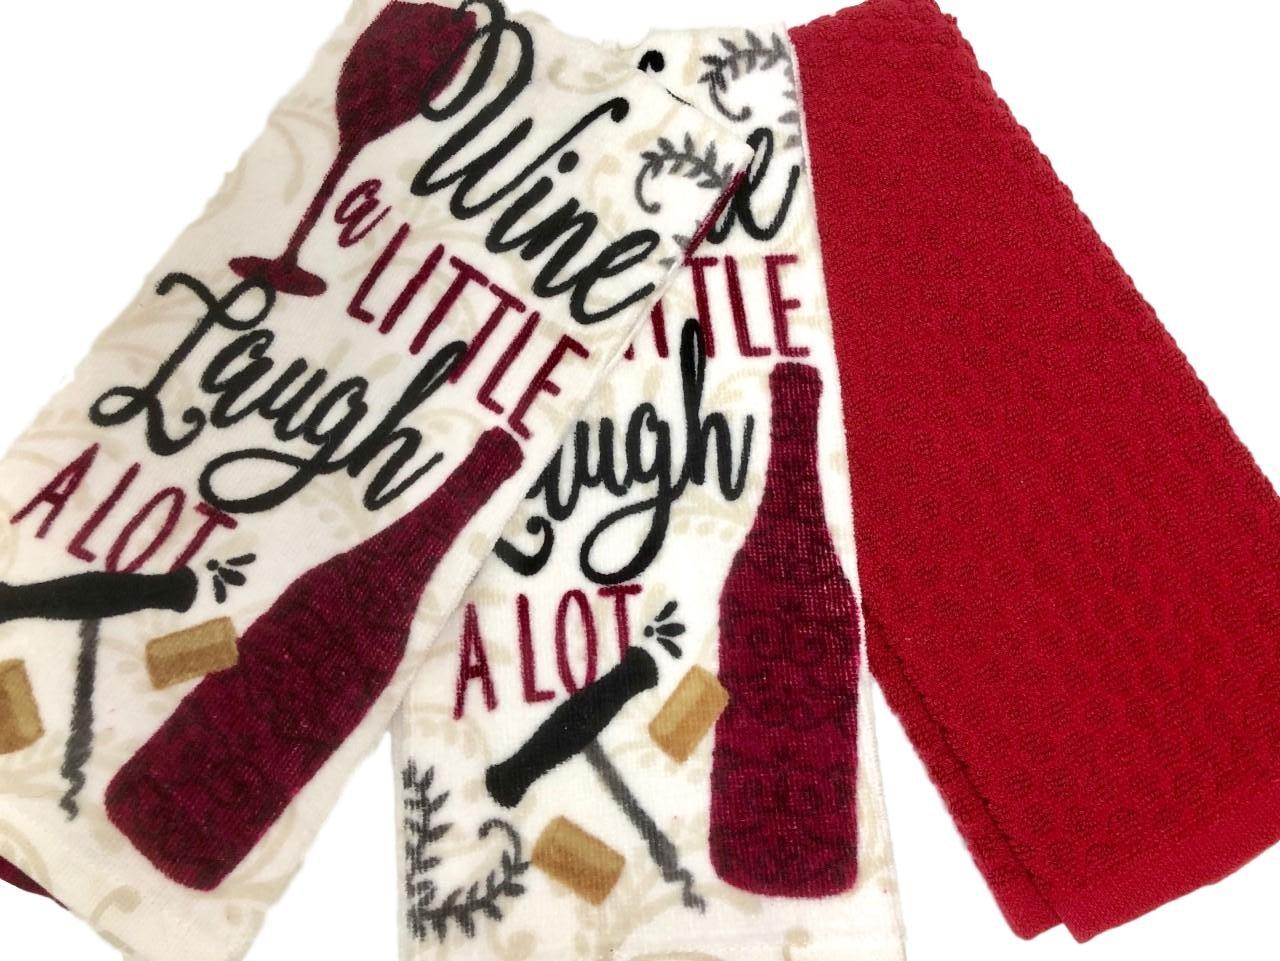 Combined Brands Wine a Little Laugh a Lot! Bundle of Three 100% Cotton Kitchen Towels (Burgundy Wine)